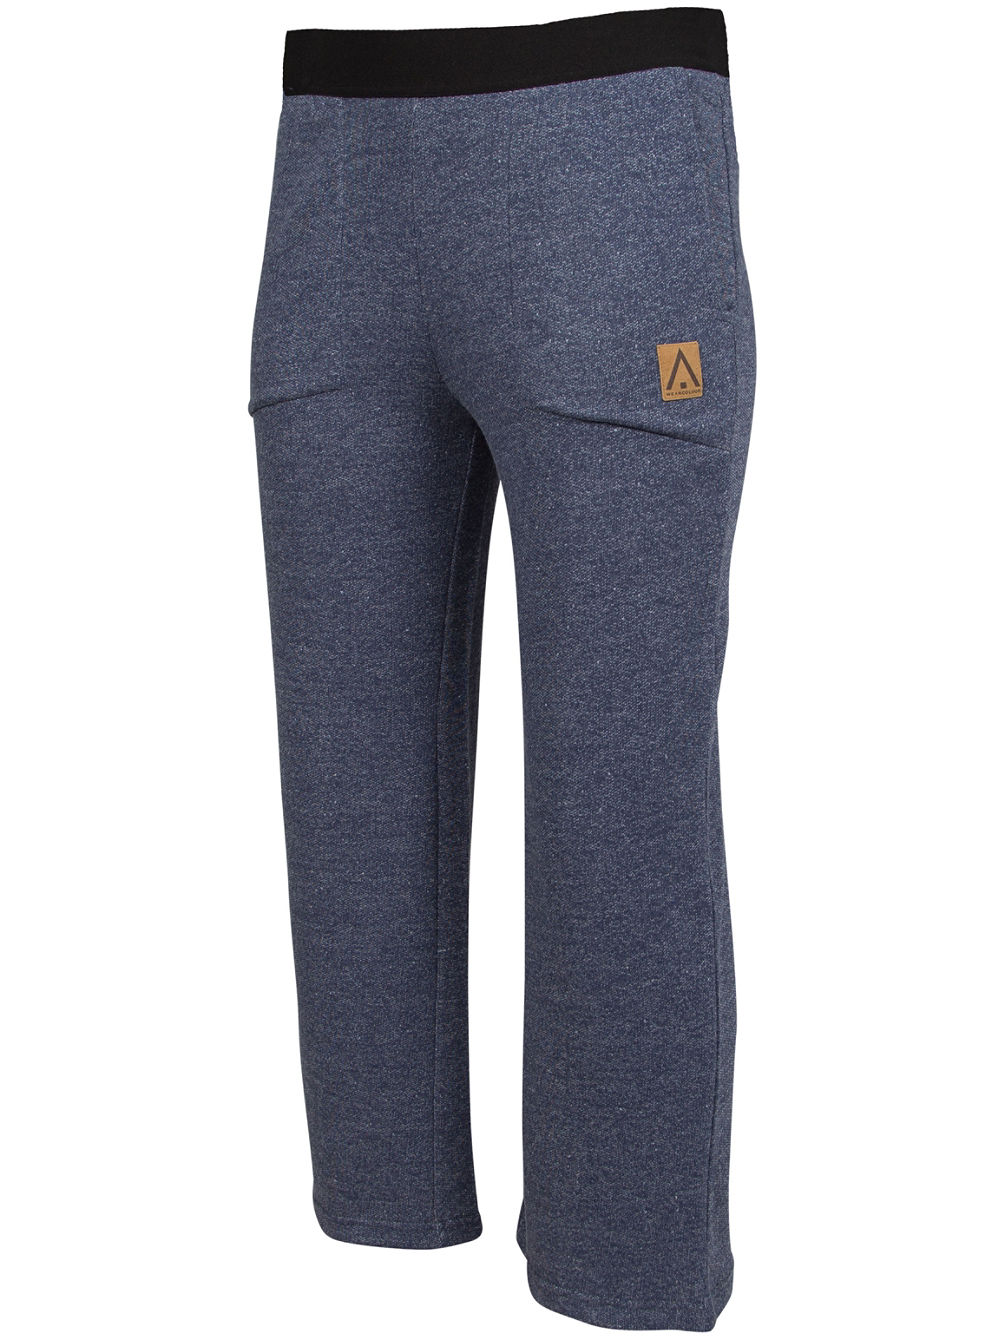 Soft Jogging Pants